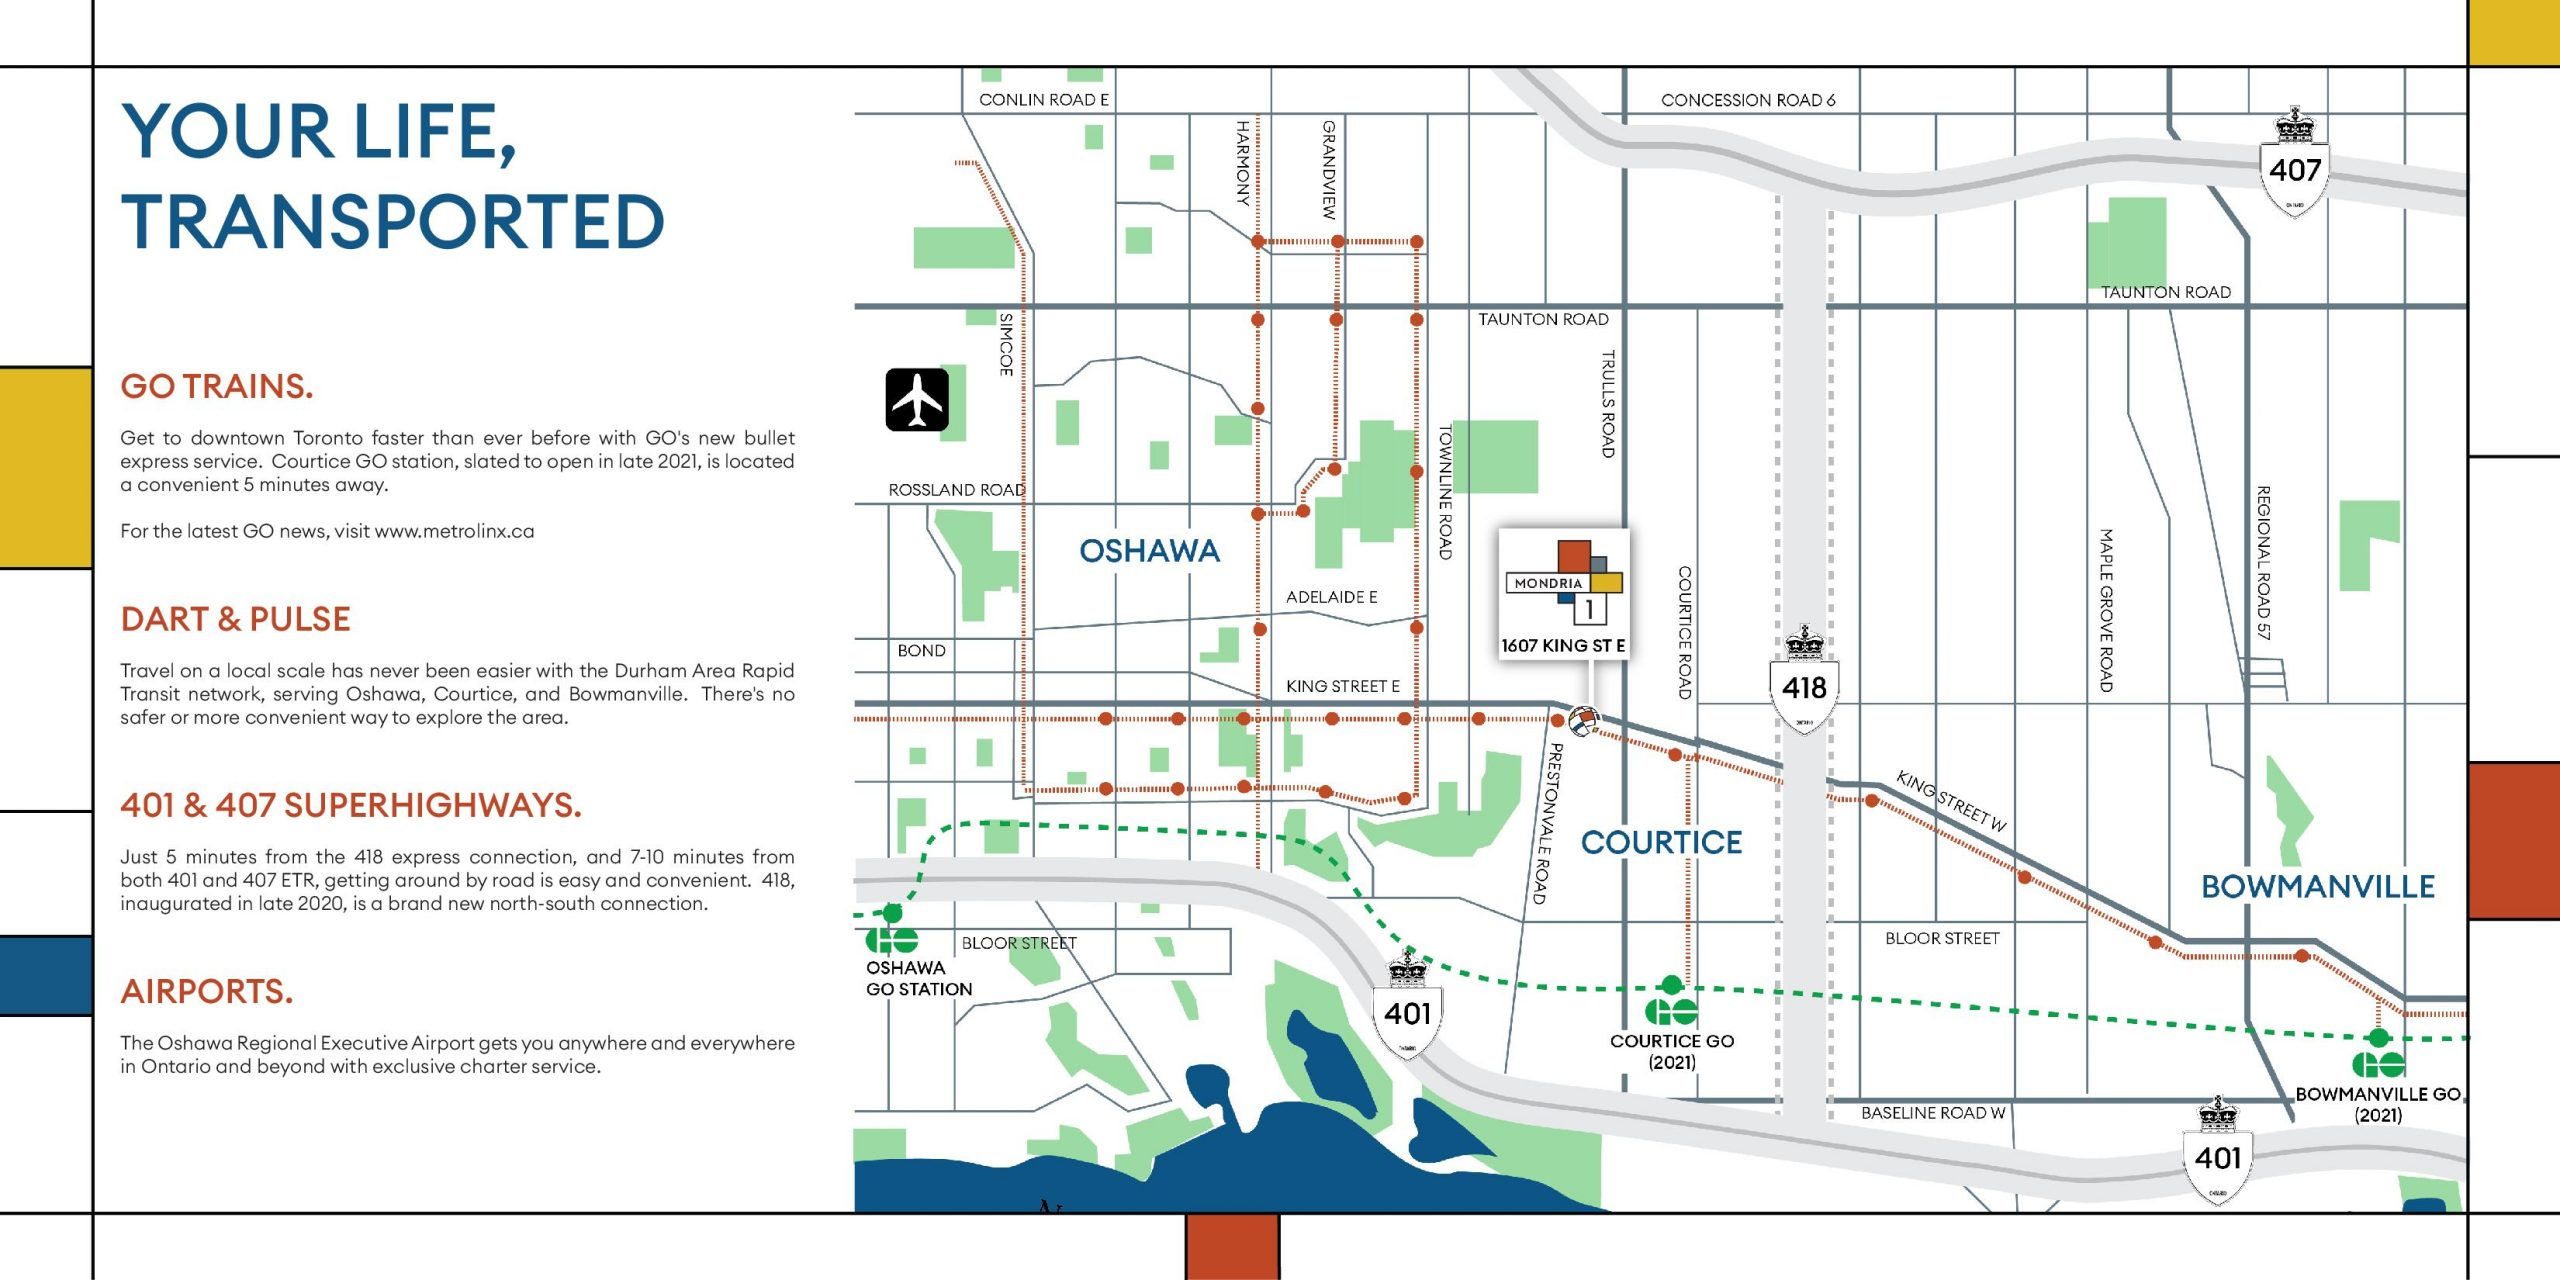 Courtice Transit Map